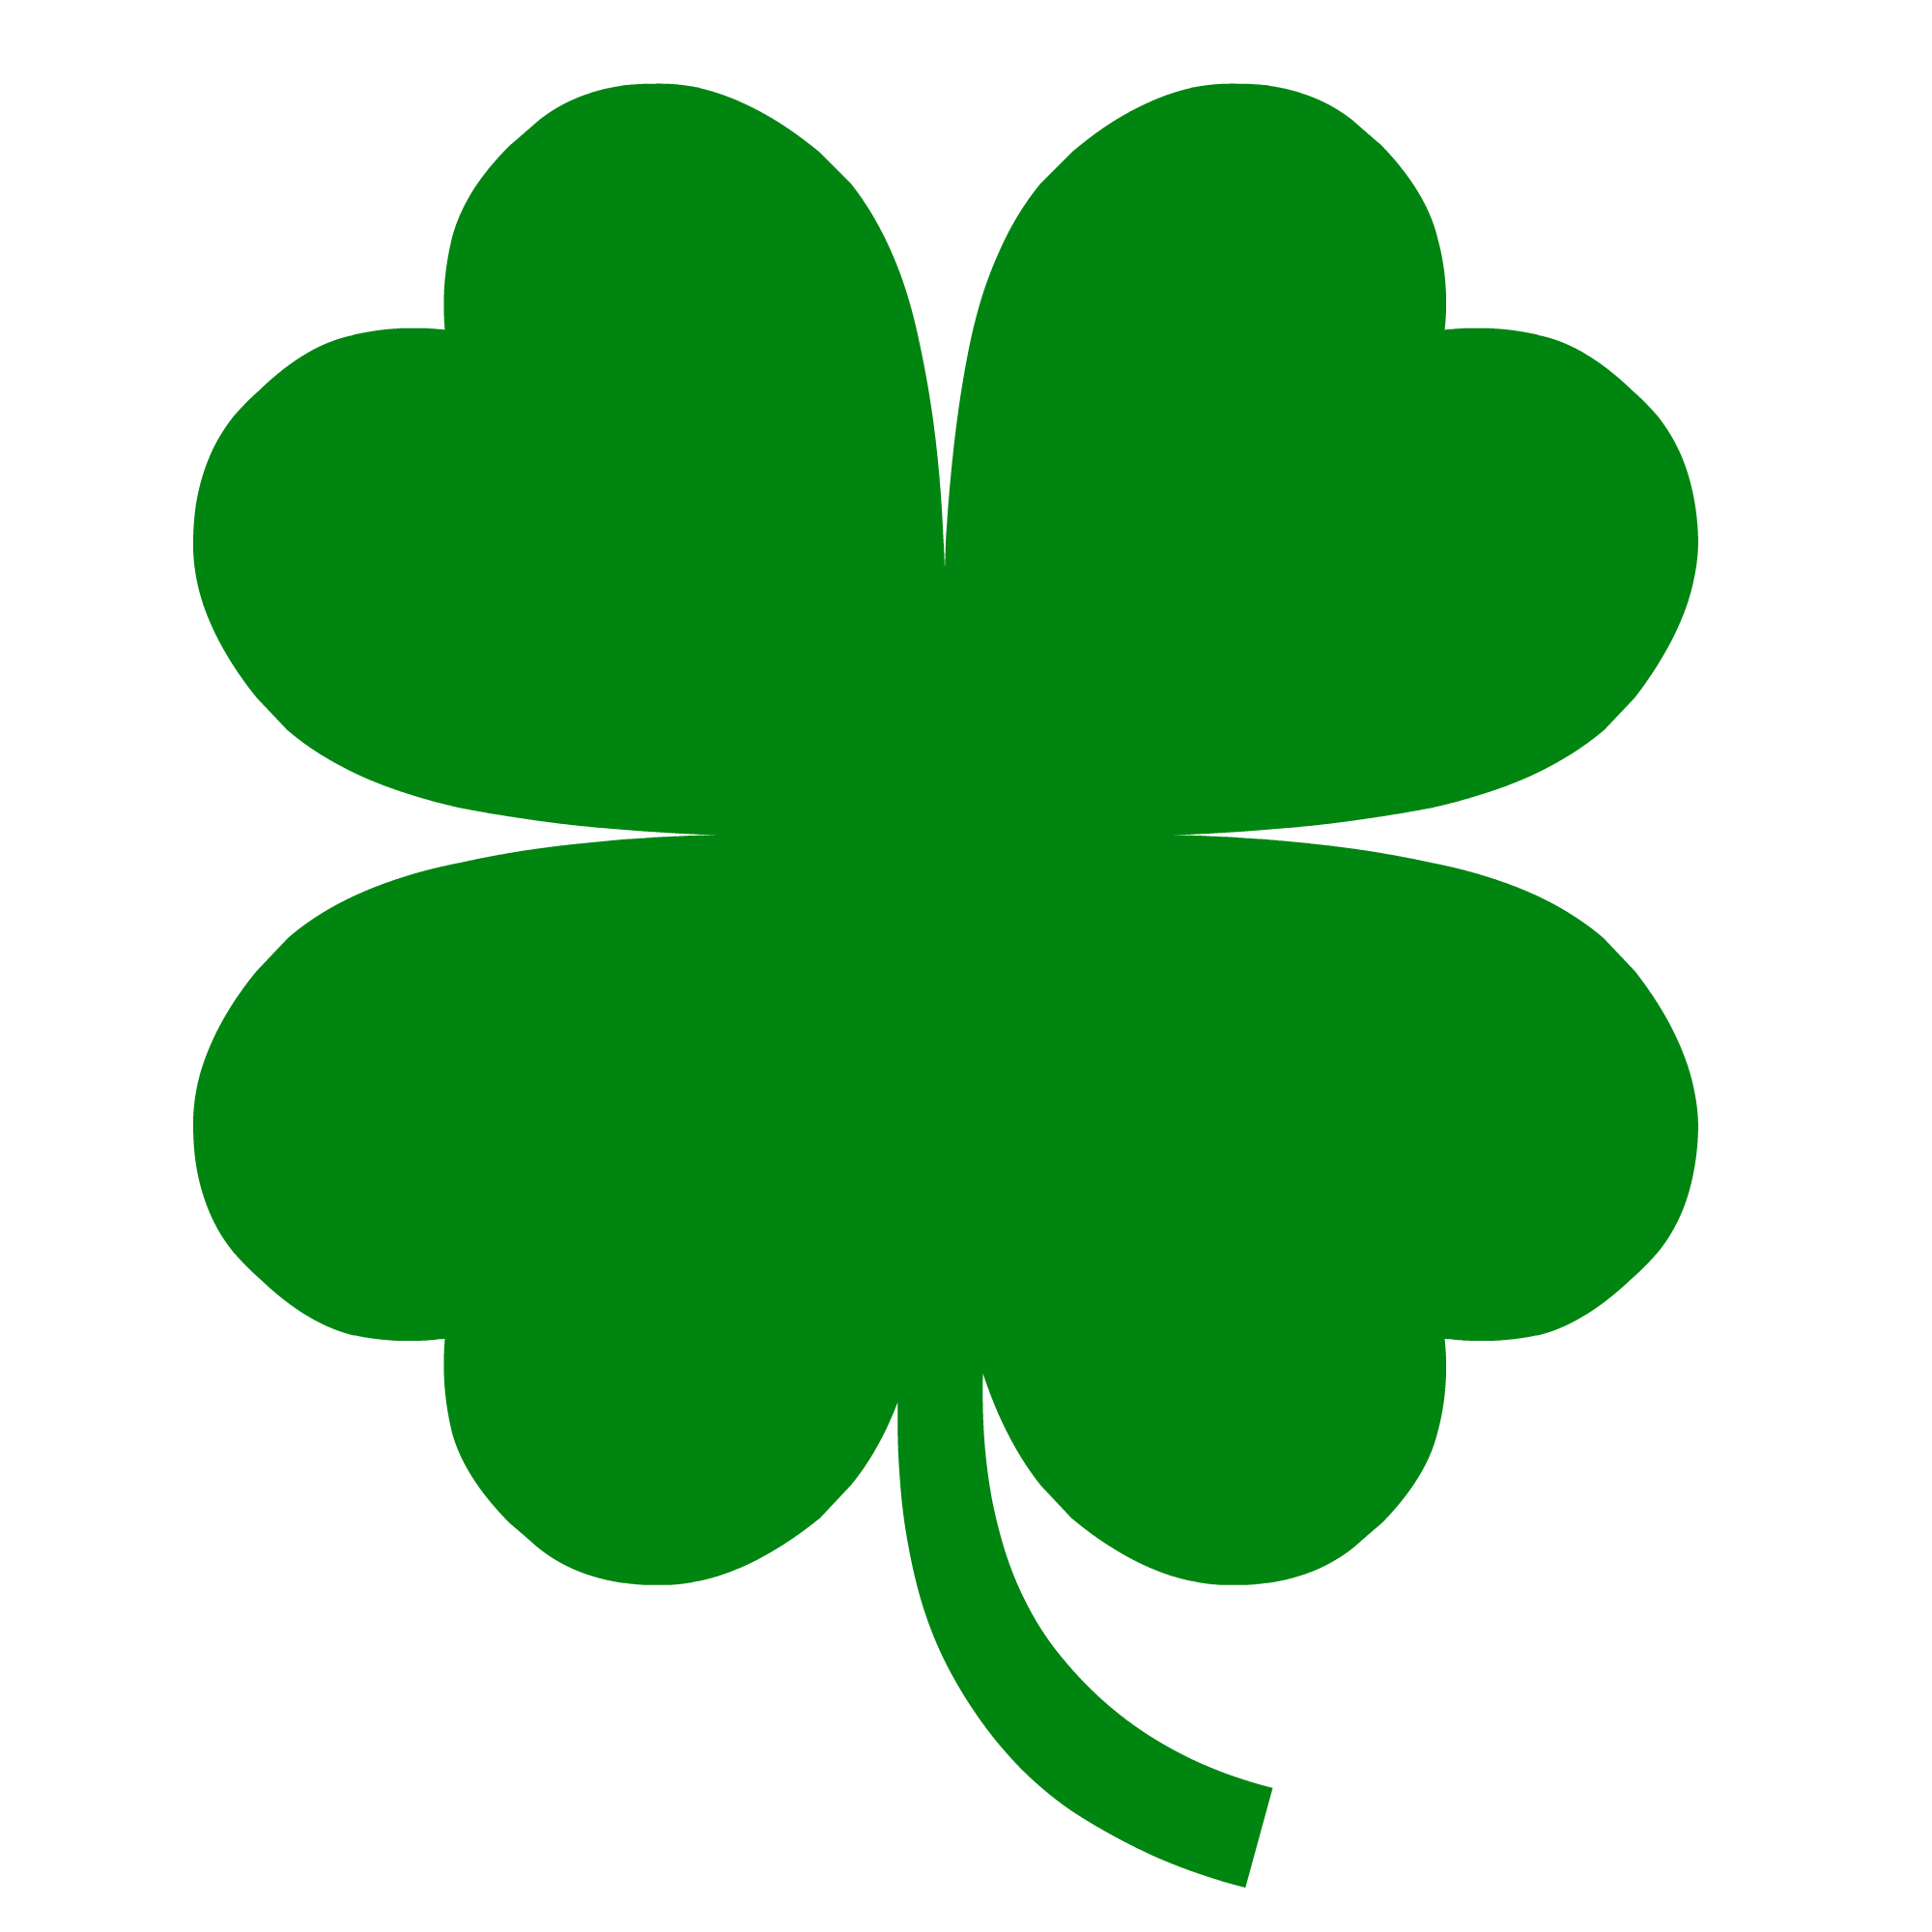 4 leaf clover clipart at getdrawings com free for personal use 4 rh getdrawings com clover clip art free green spring clover clip art free